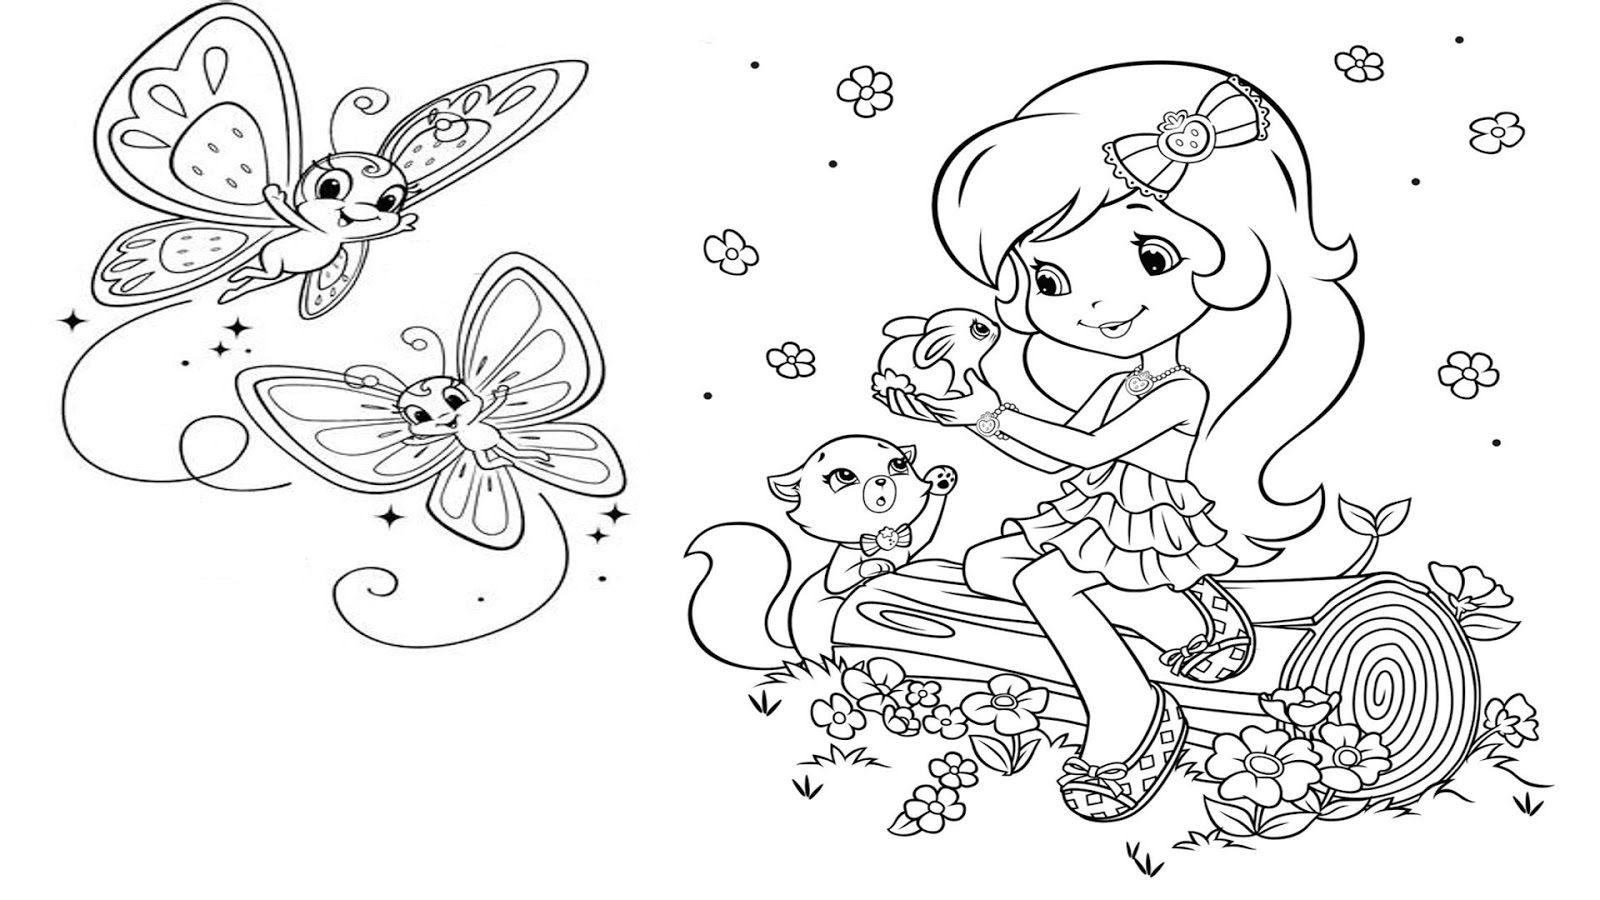 strawberry shortcake for kids coloring pages strawberry